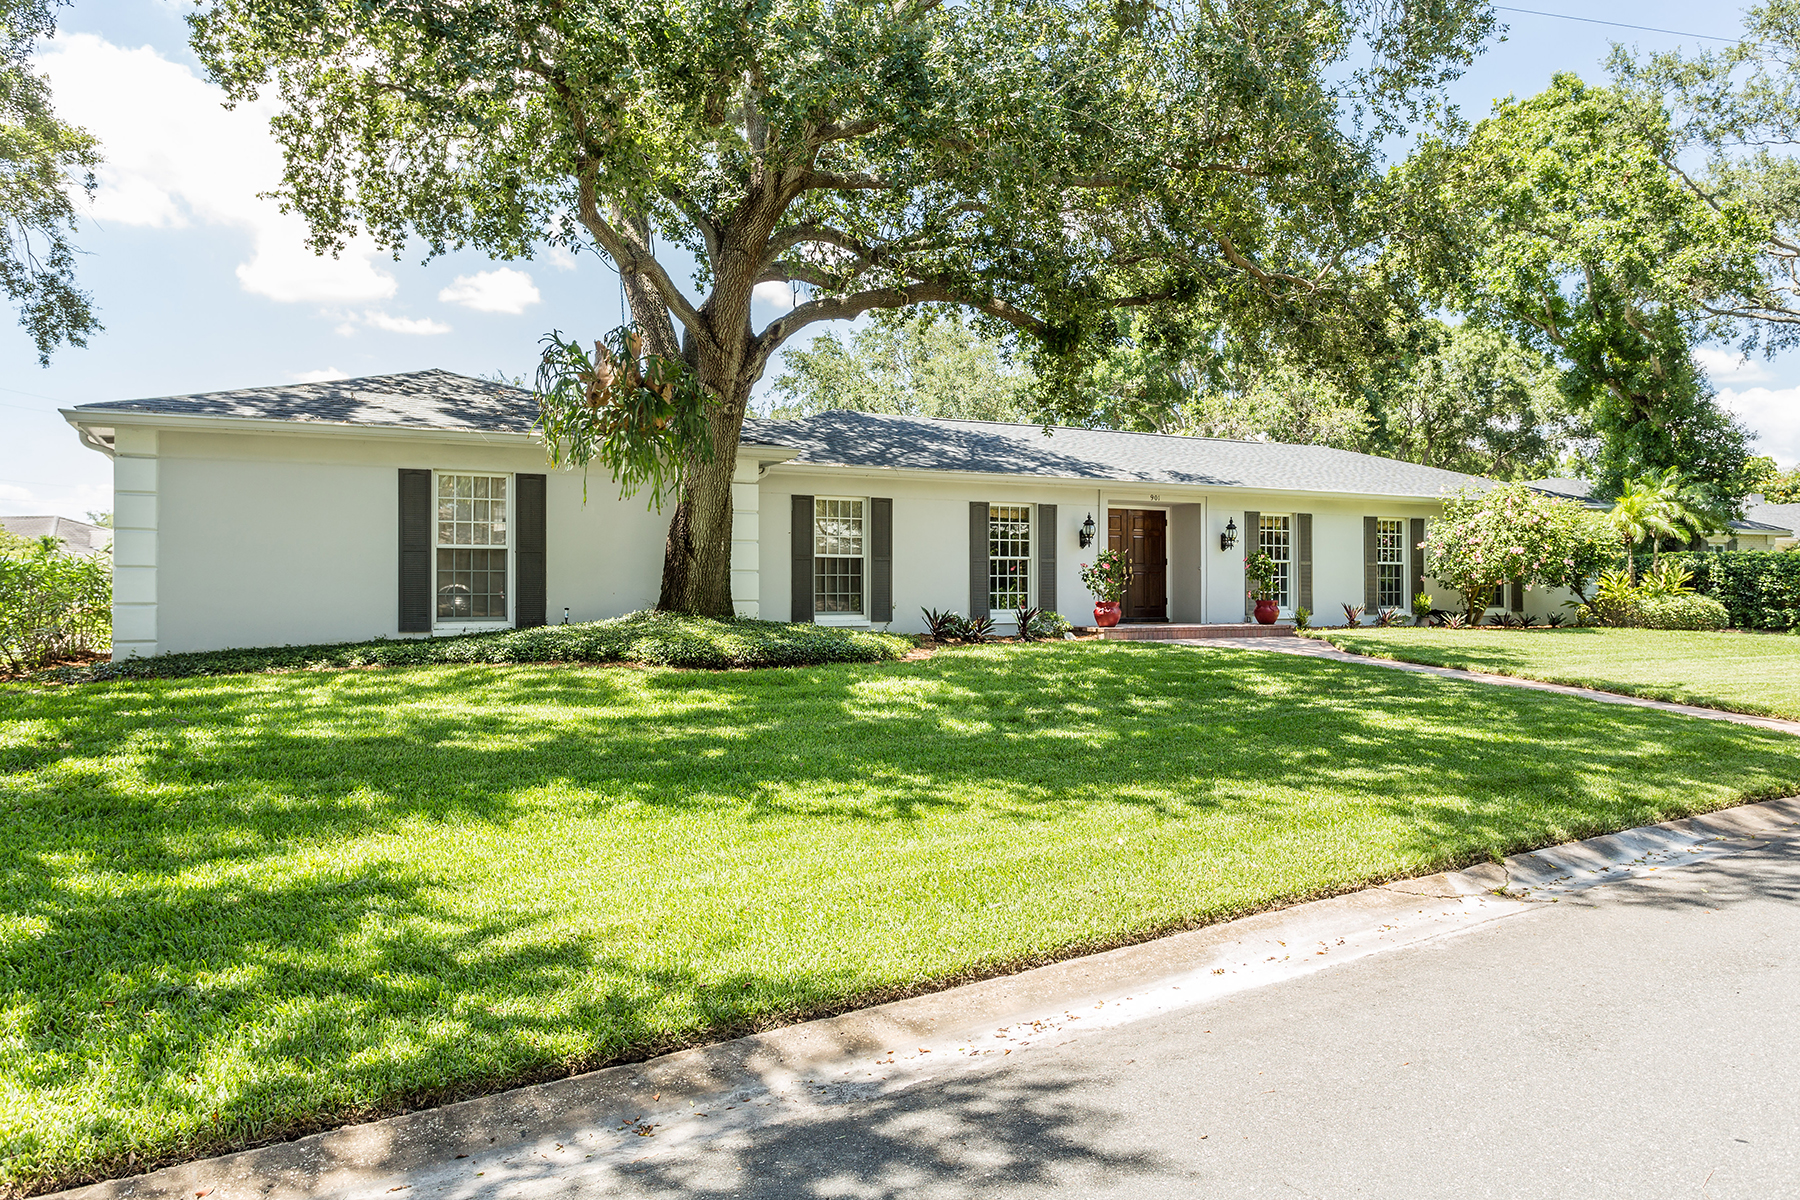 Single Family Home for Sale at SNELL ISLE 901 31st Ave NE Snell Isle, St. Petersburg, Florida, 33704 United States